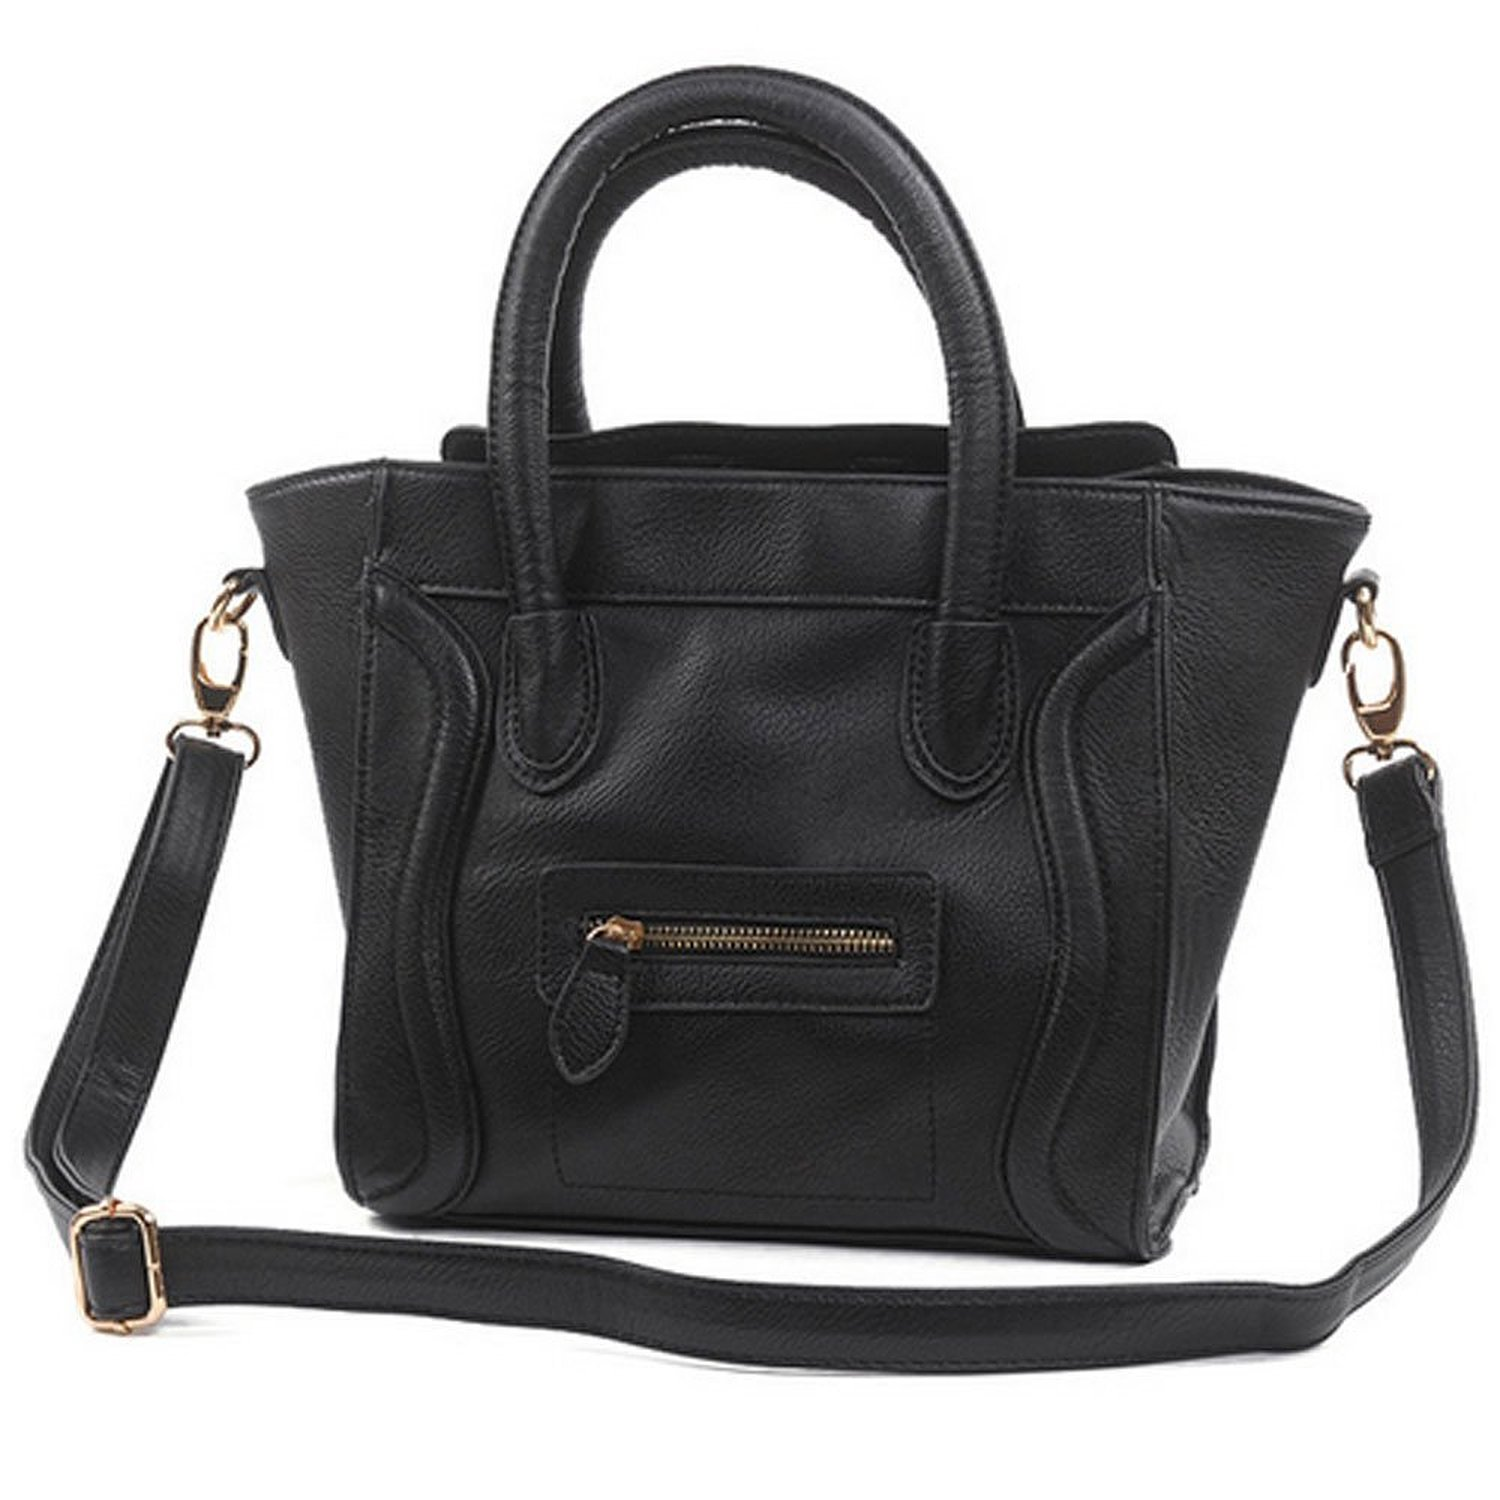 Garcia Ladies Faux Leather Smile Handbags/Satchel/Tote Handbags ...